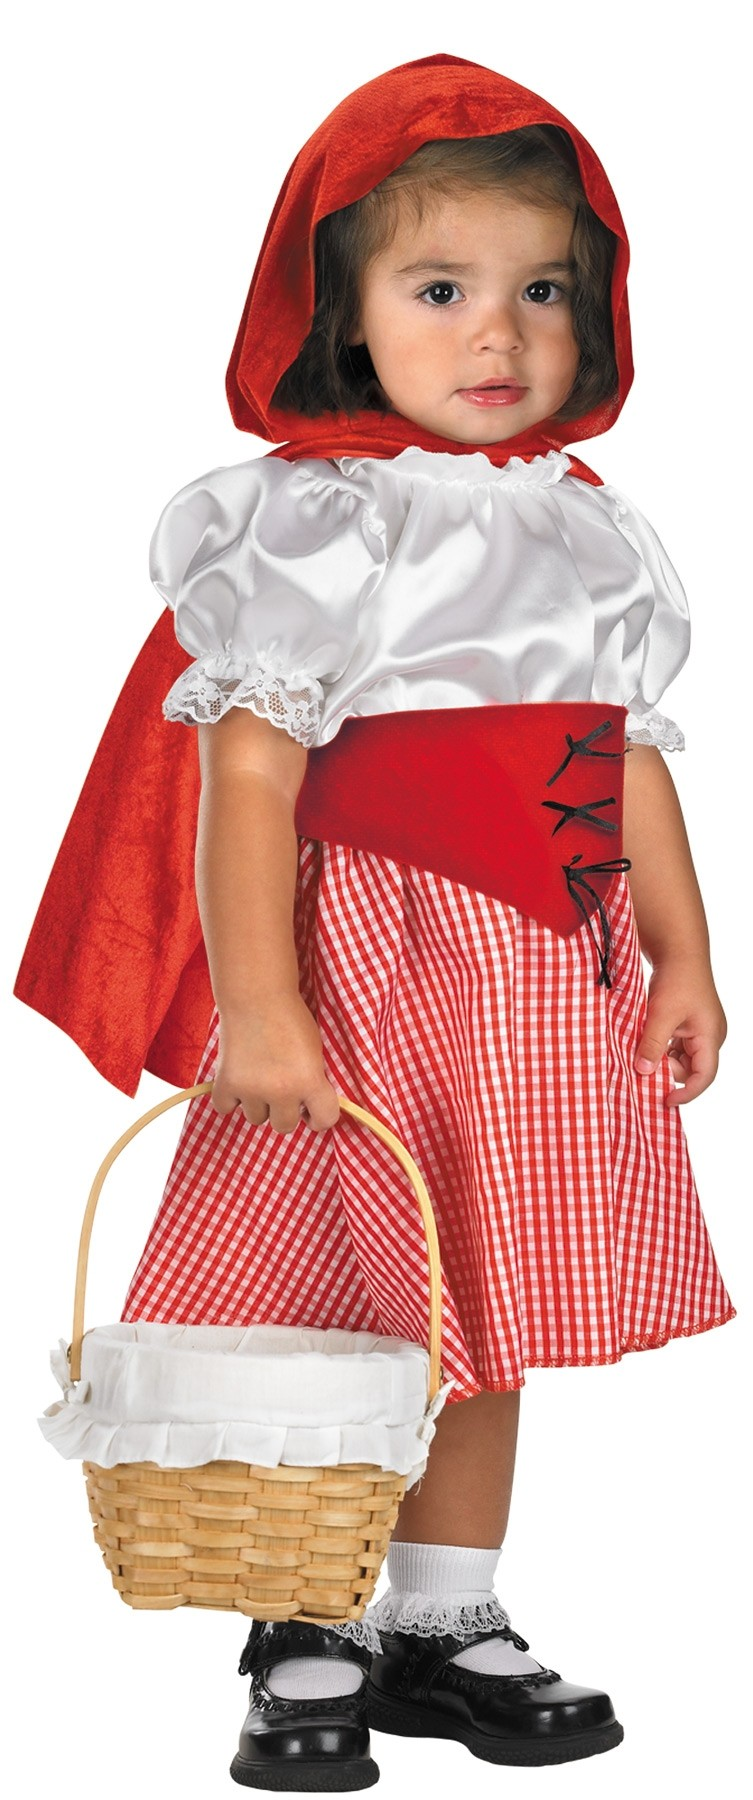 4deb15fa70a Little Red Riding Hood Toddler Costume 12-18 Months